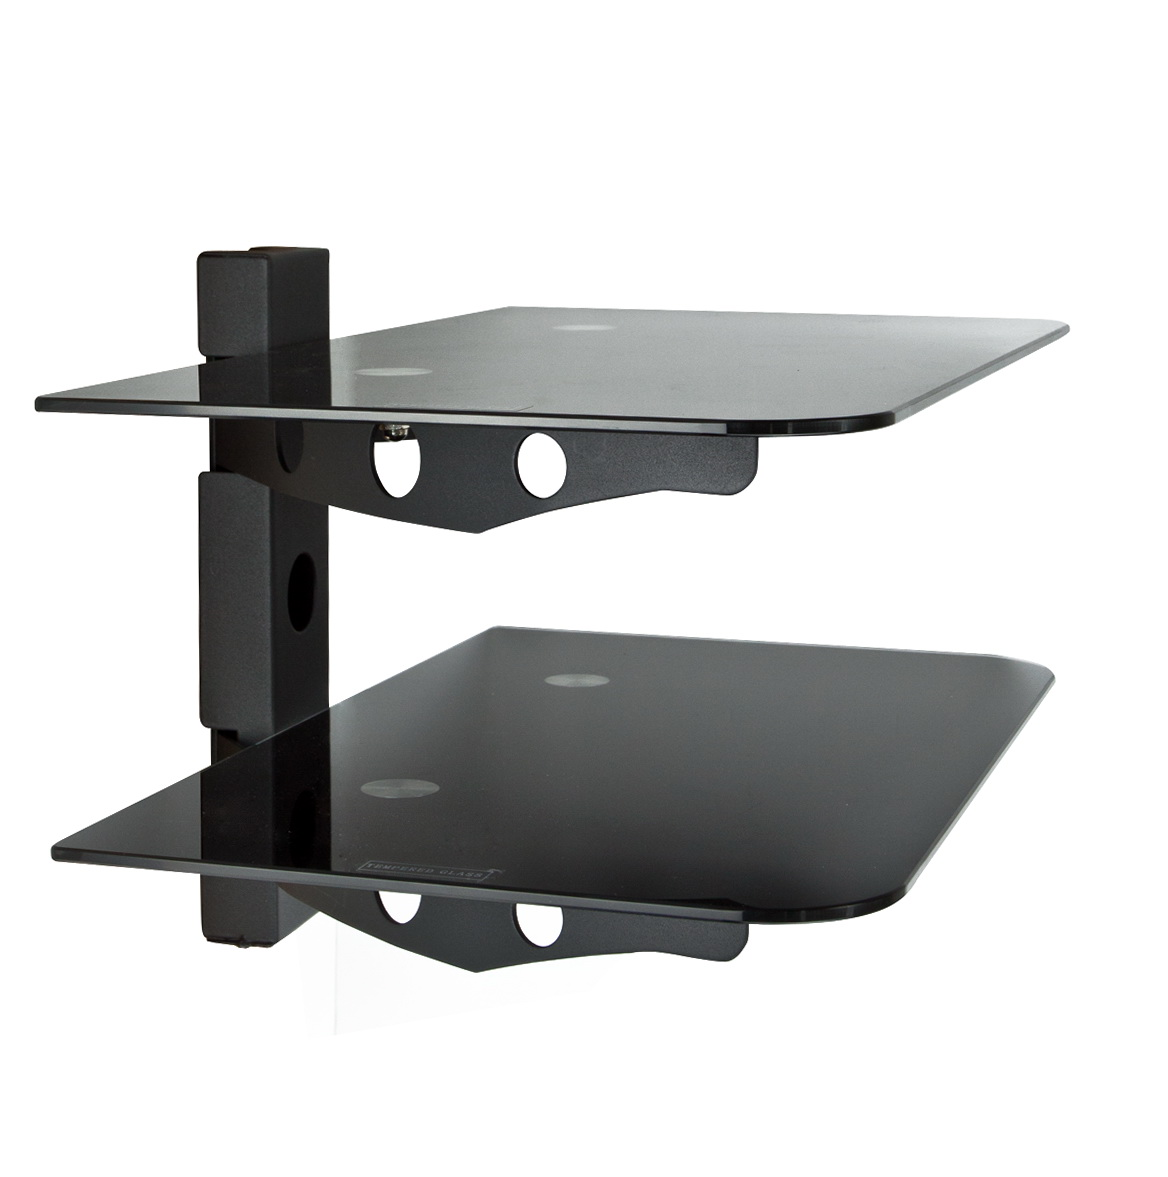 Swivel Tv Wall Mount With Shelves